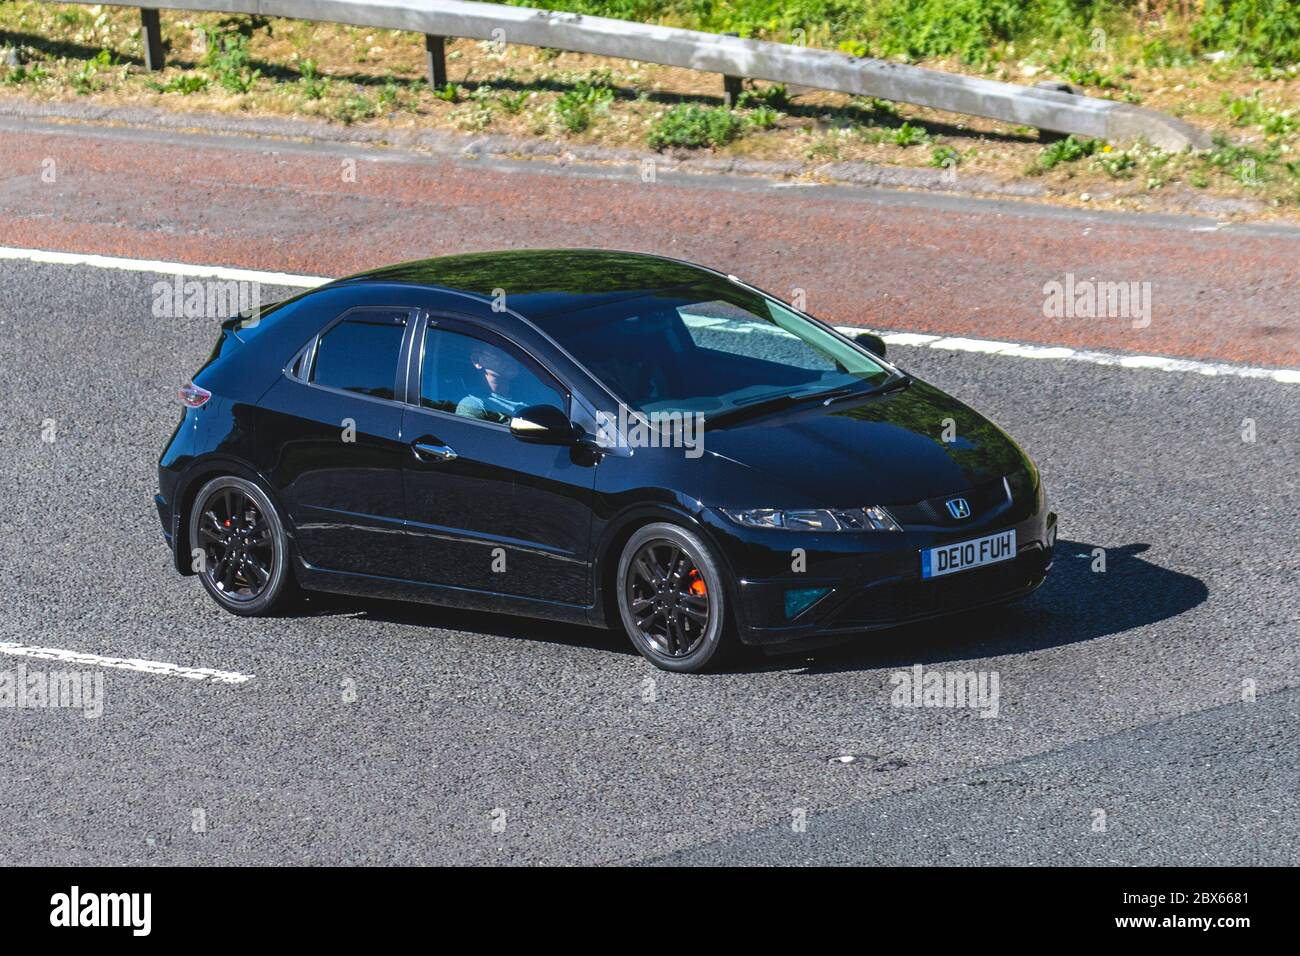 The Honda Civic 1 High Resolution Stock Photography And Images Alamy